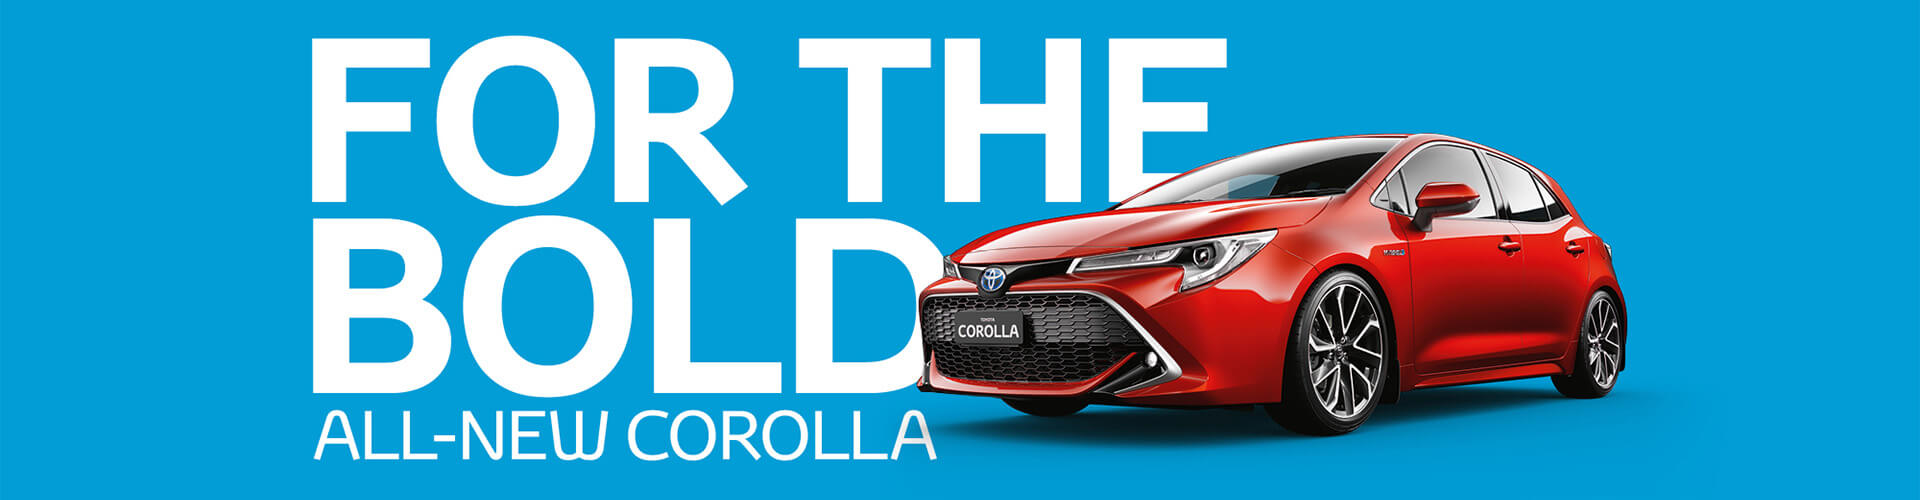 All-New Corolla